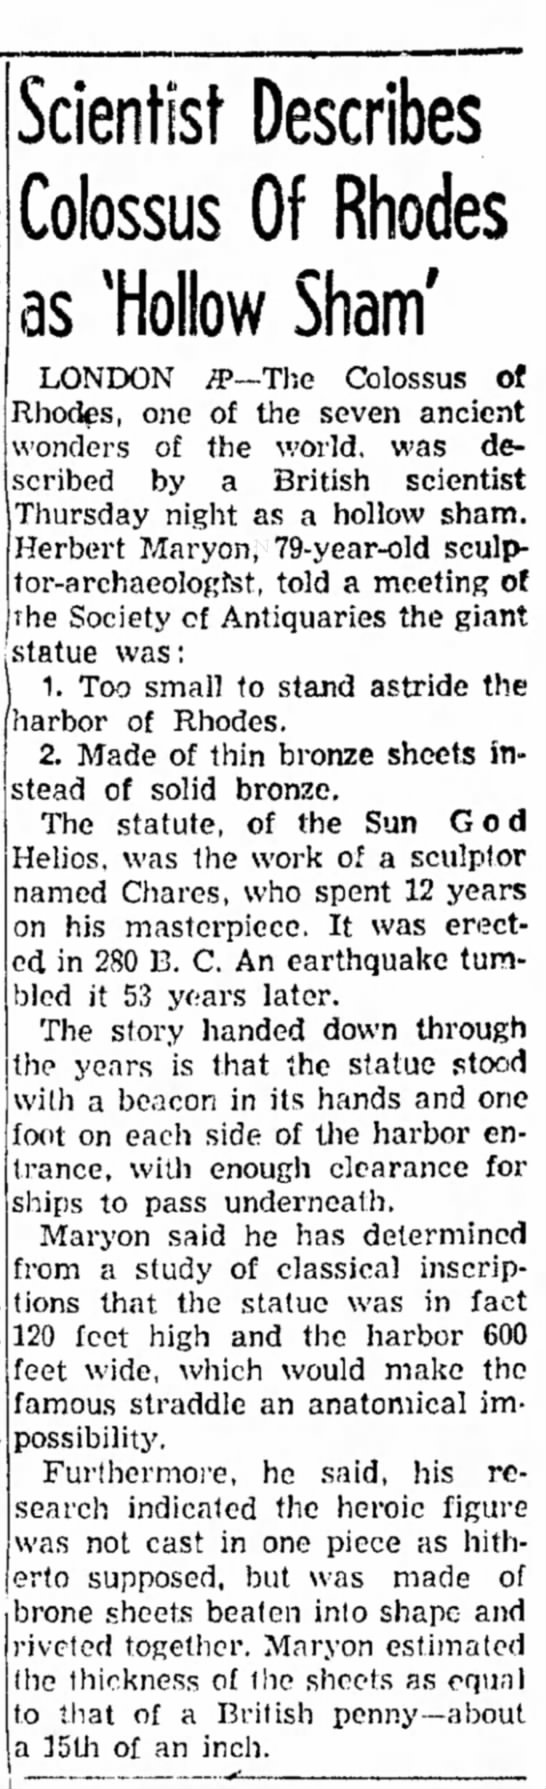 Herbert Maryon on the Colossus of Rhodes, Council Bluffs Nonpareil, 5 December 1953 - injured area let- cash total than office Mr....